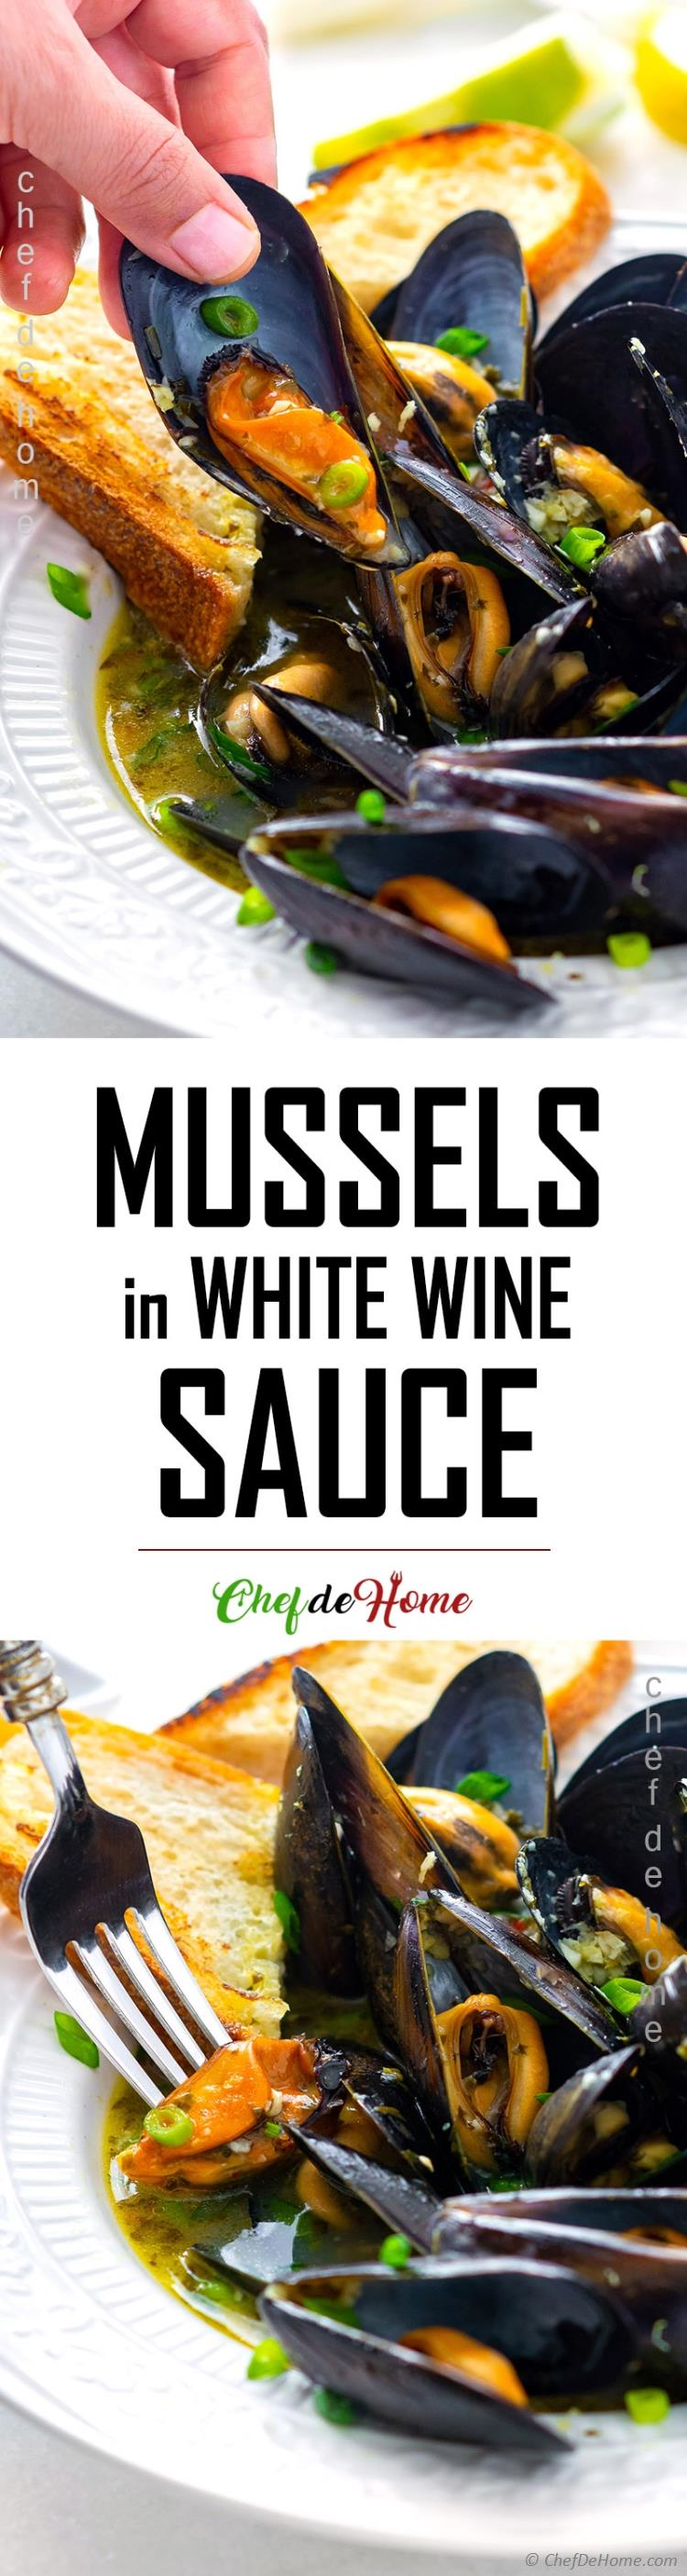 Mussels in White Wine Recipe